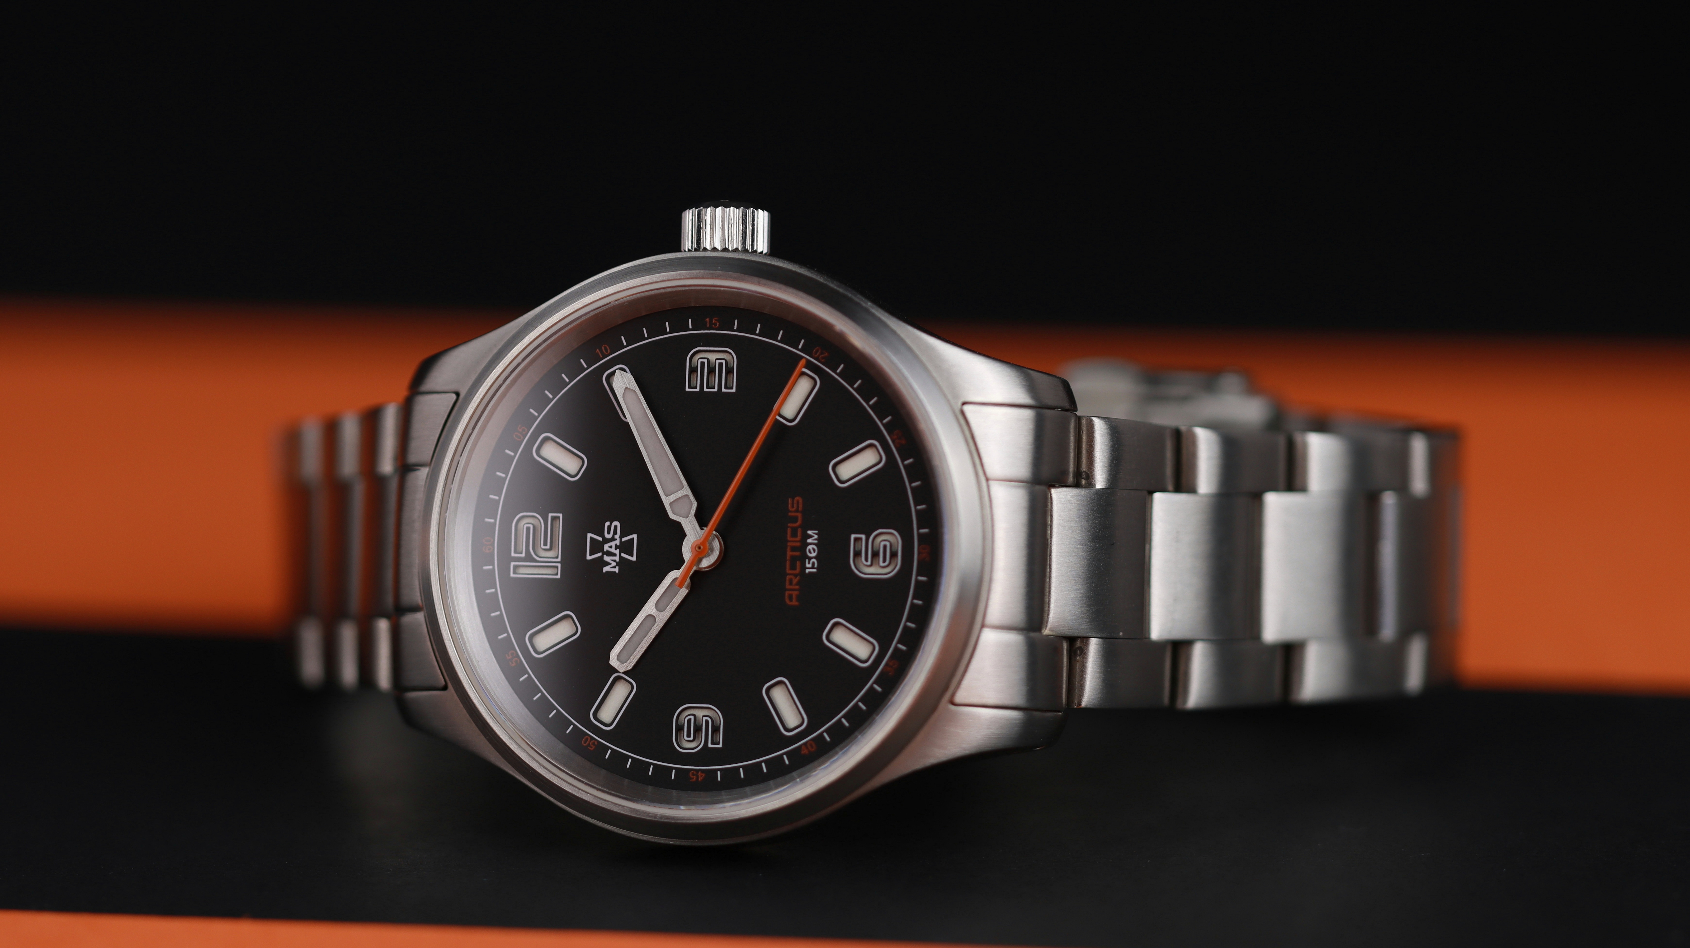 MICRO MONDAYS: Bold field watches for under $500 in the MAS Watches Arcticus range